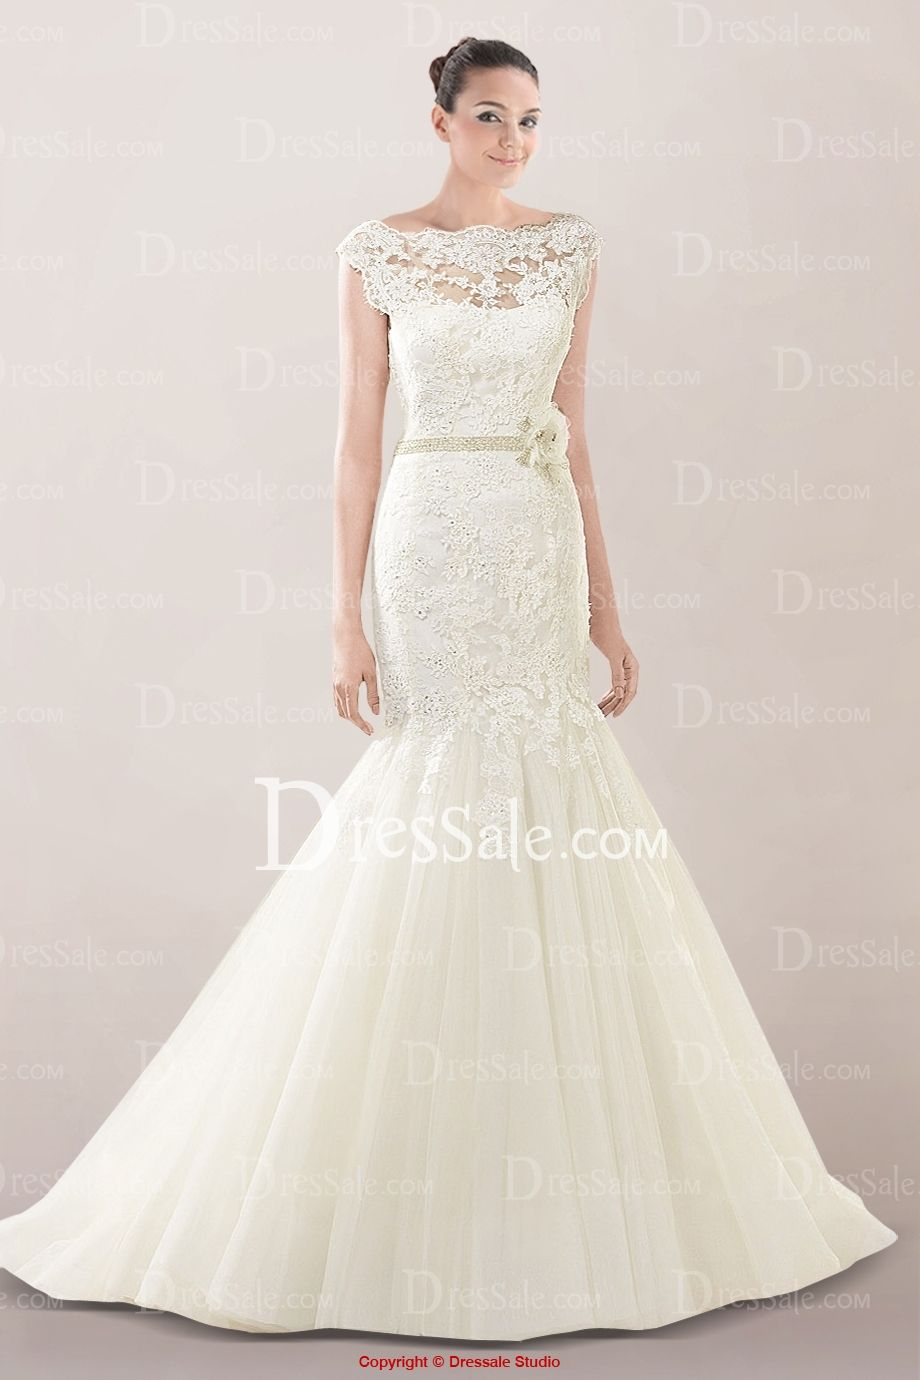 Illusion bateau neckline mermaid wedding dress featuring beautiful